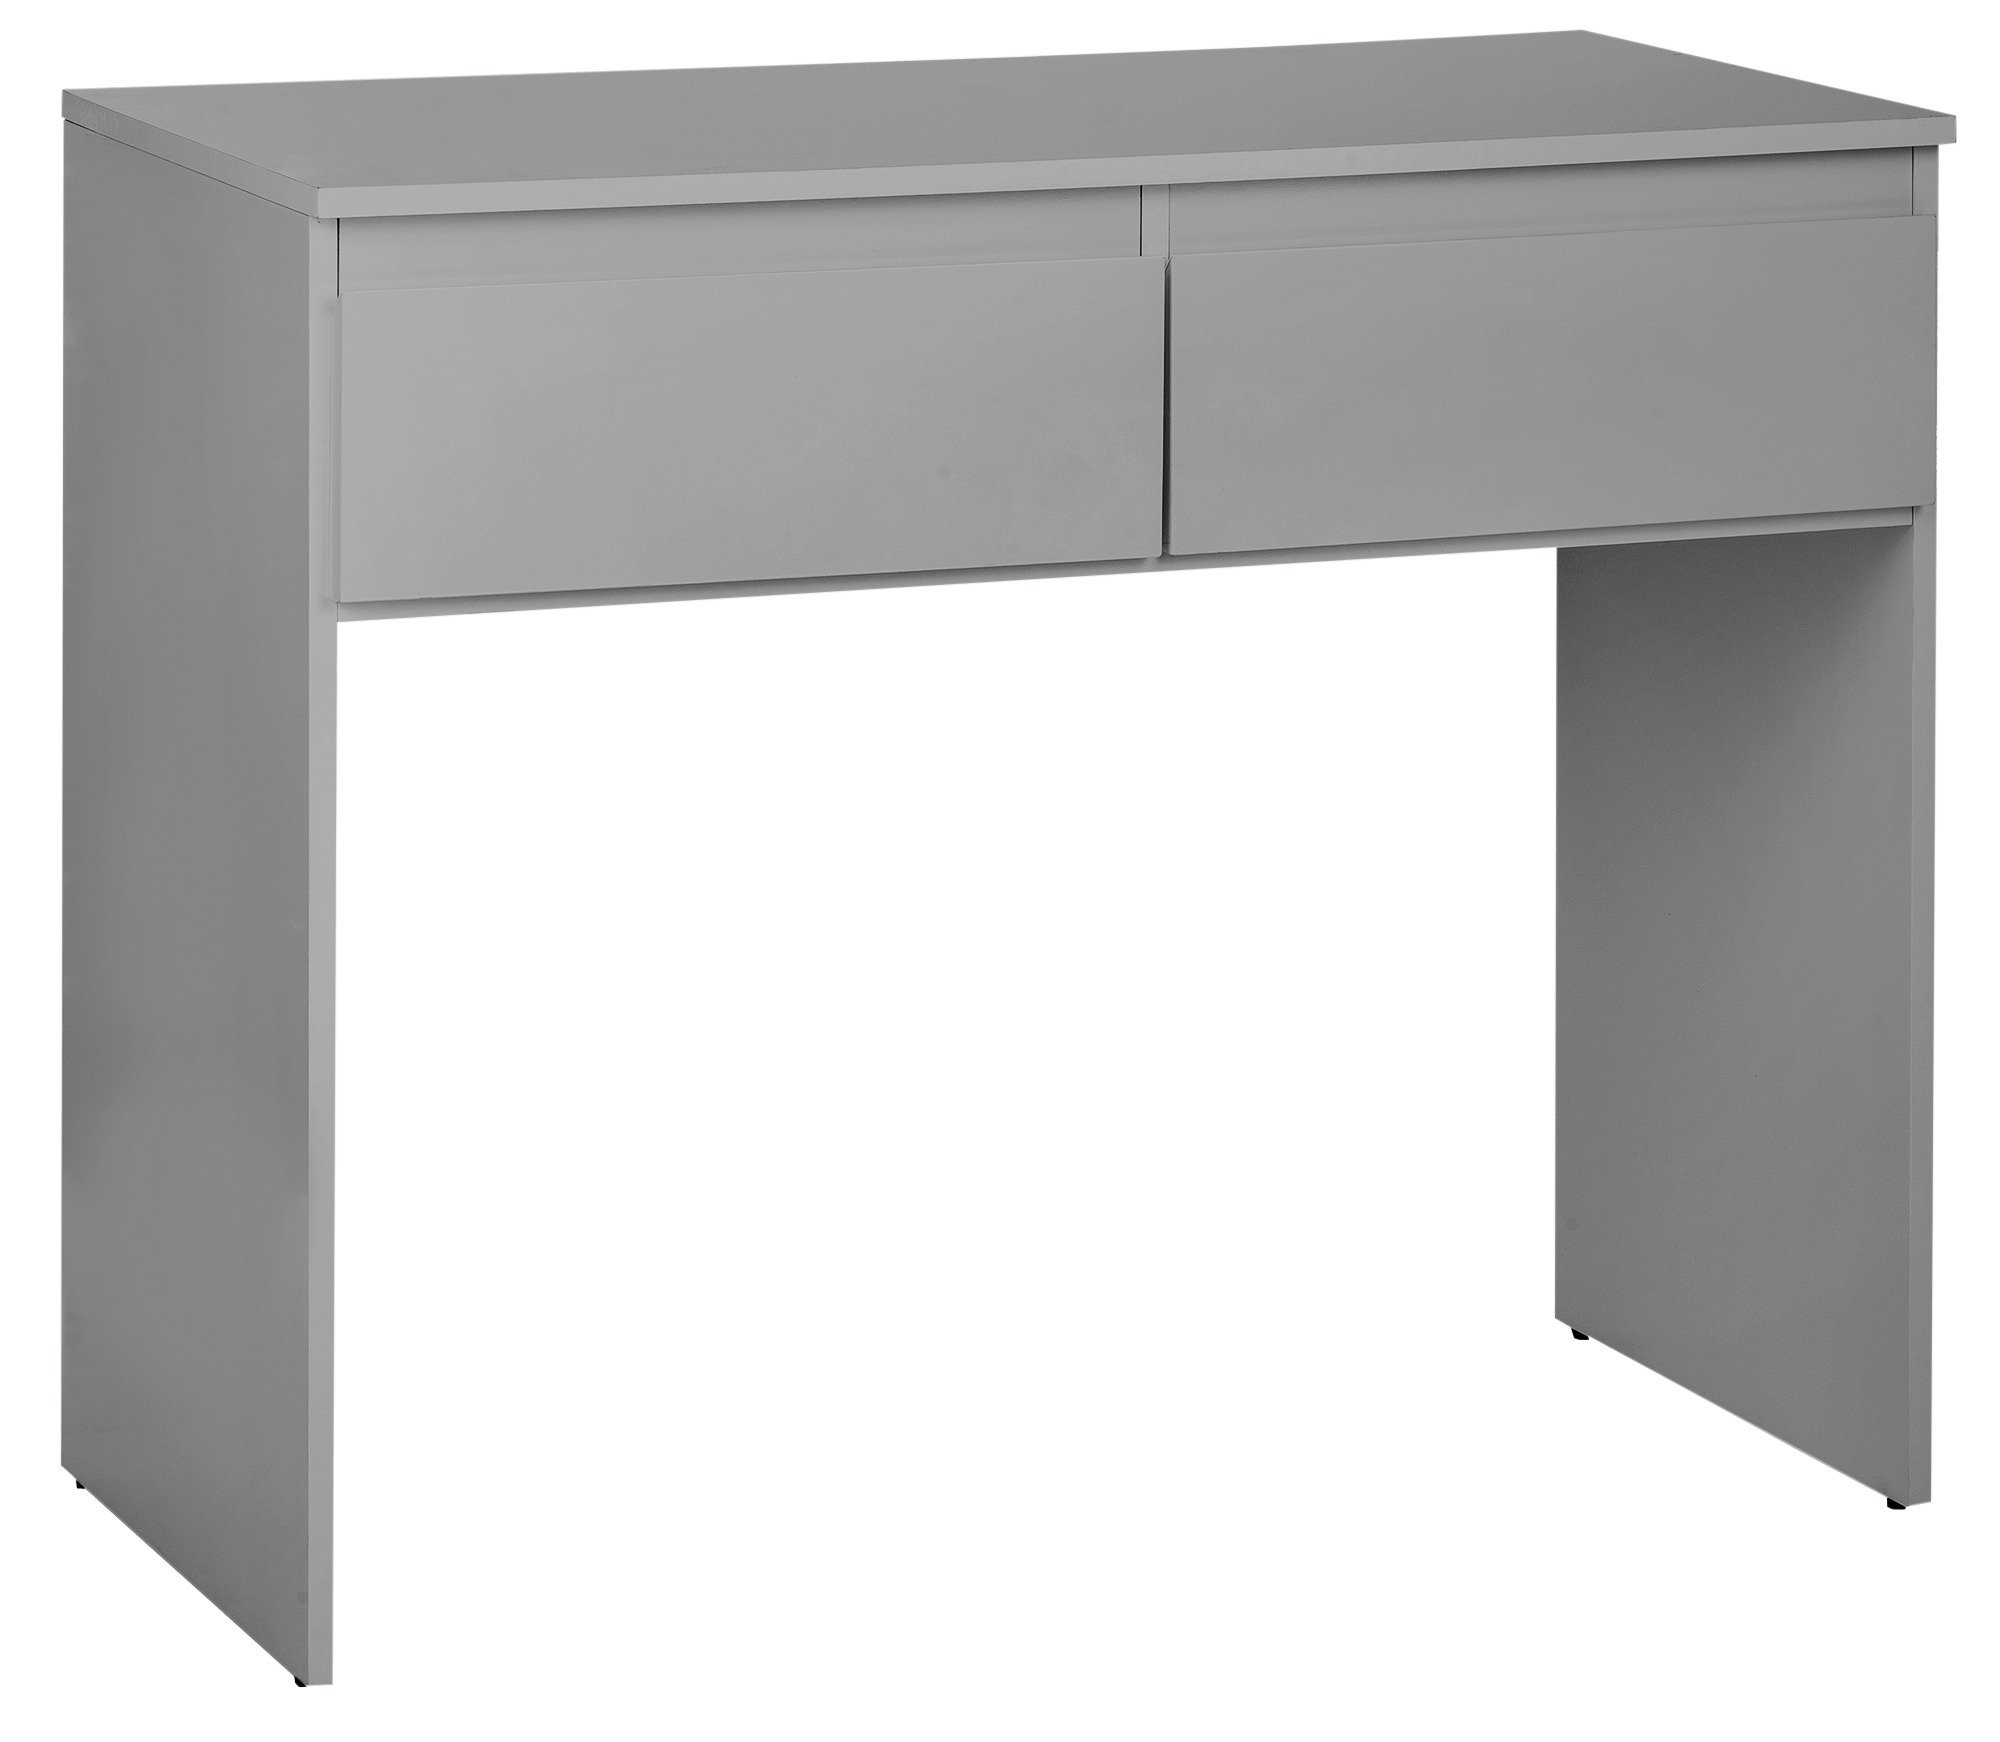 Sale On Hygena Larvik Dressing Table Grey Gloss Hygena